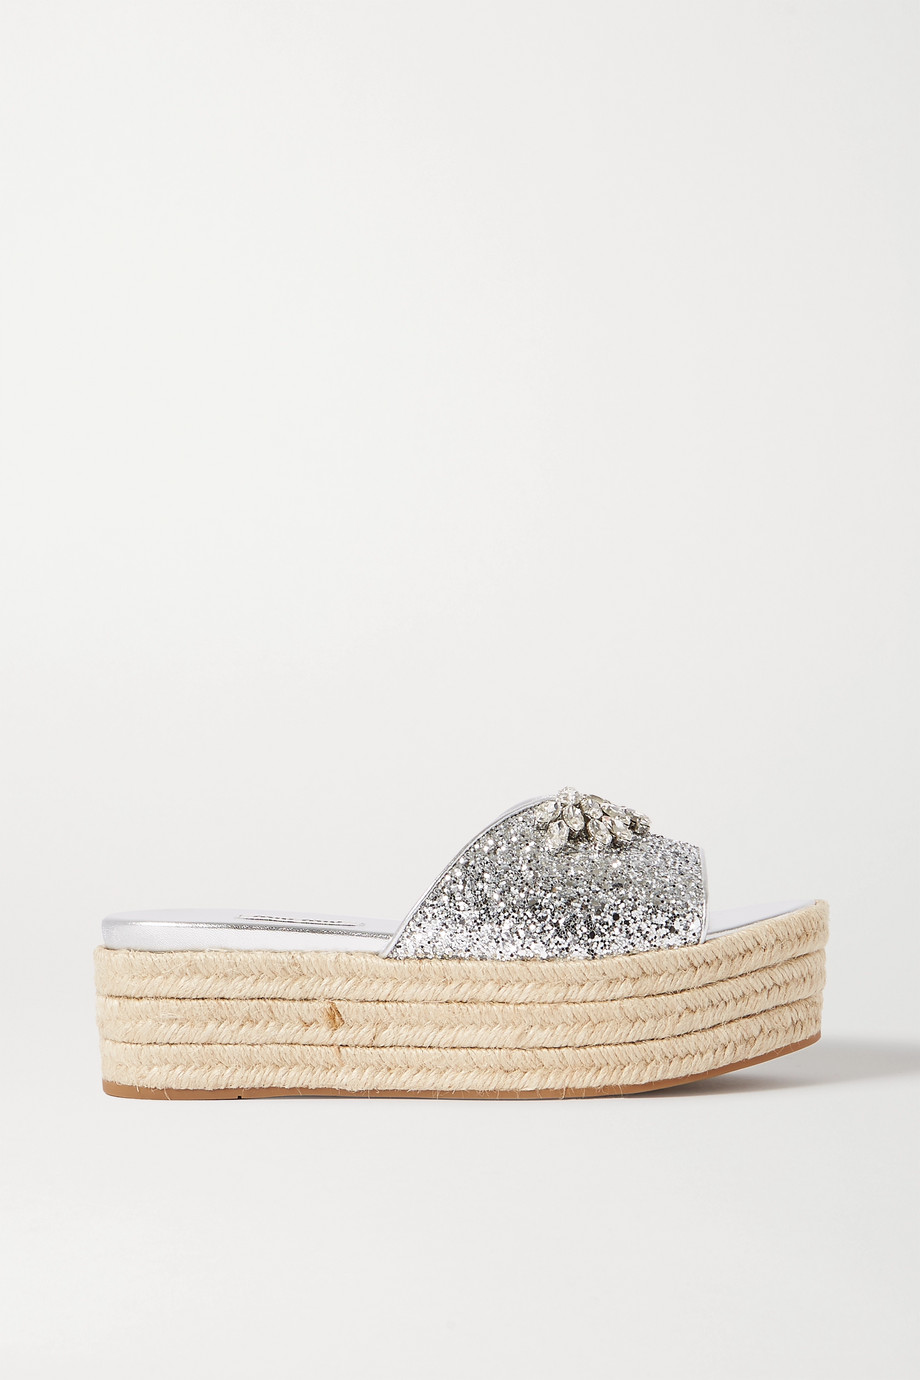 Miu Miu Crystal-embellished glittered leather espadrille platform slides